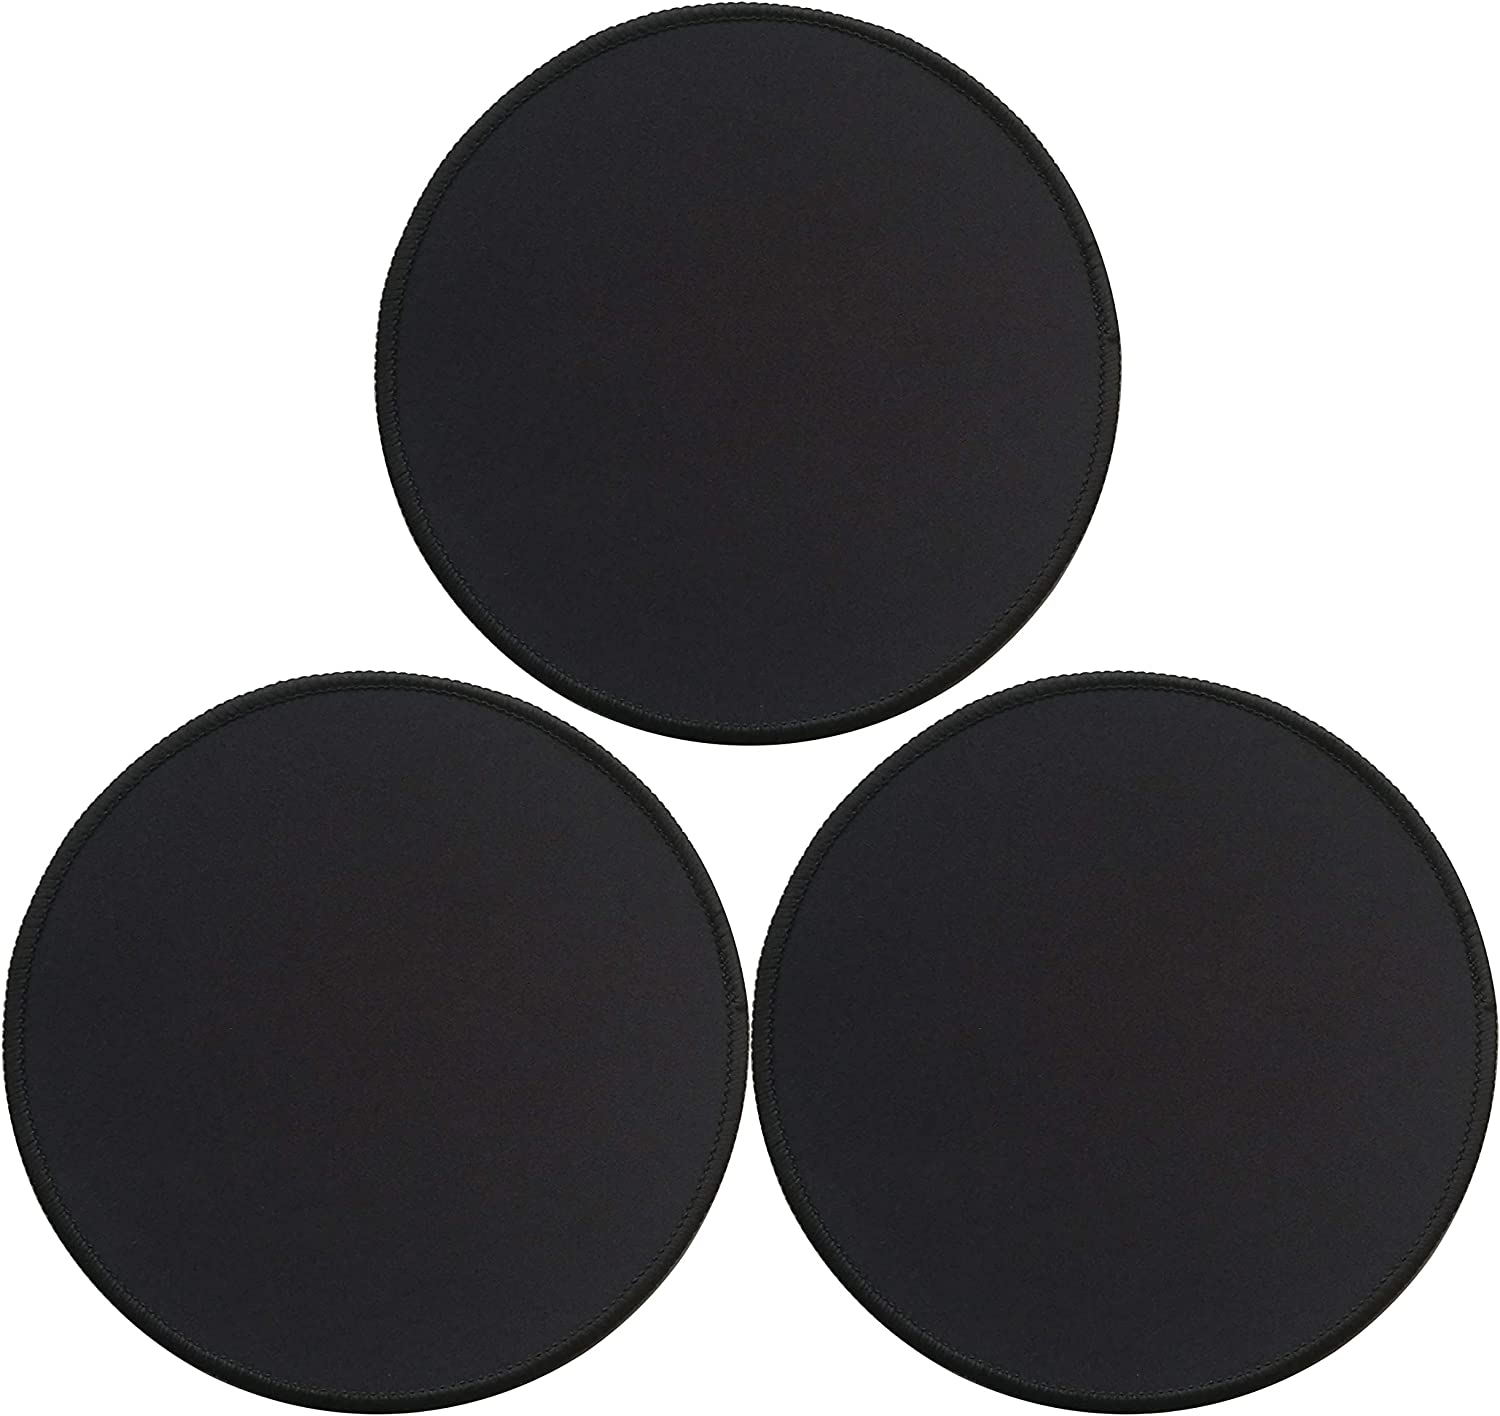 Gimnor 3 Pack Round Mouse Pads with Stitched Edges, Single Circular Mouse Pad Mat, Non-Slip Rubber Base Mousepad for All Types of Mouse Laptop Computer PC 7.87 x 7.87 inches Black